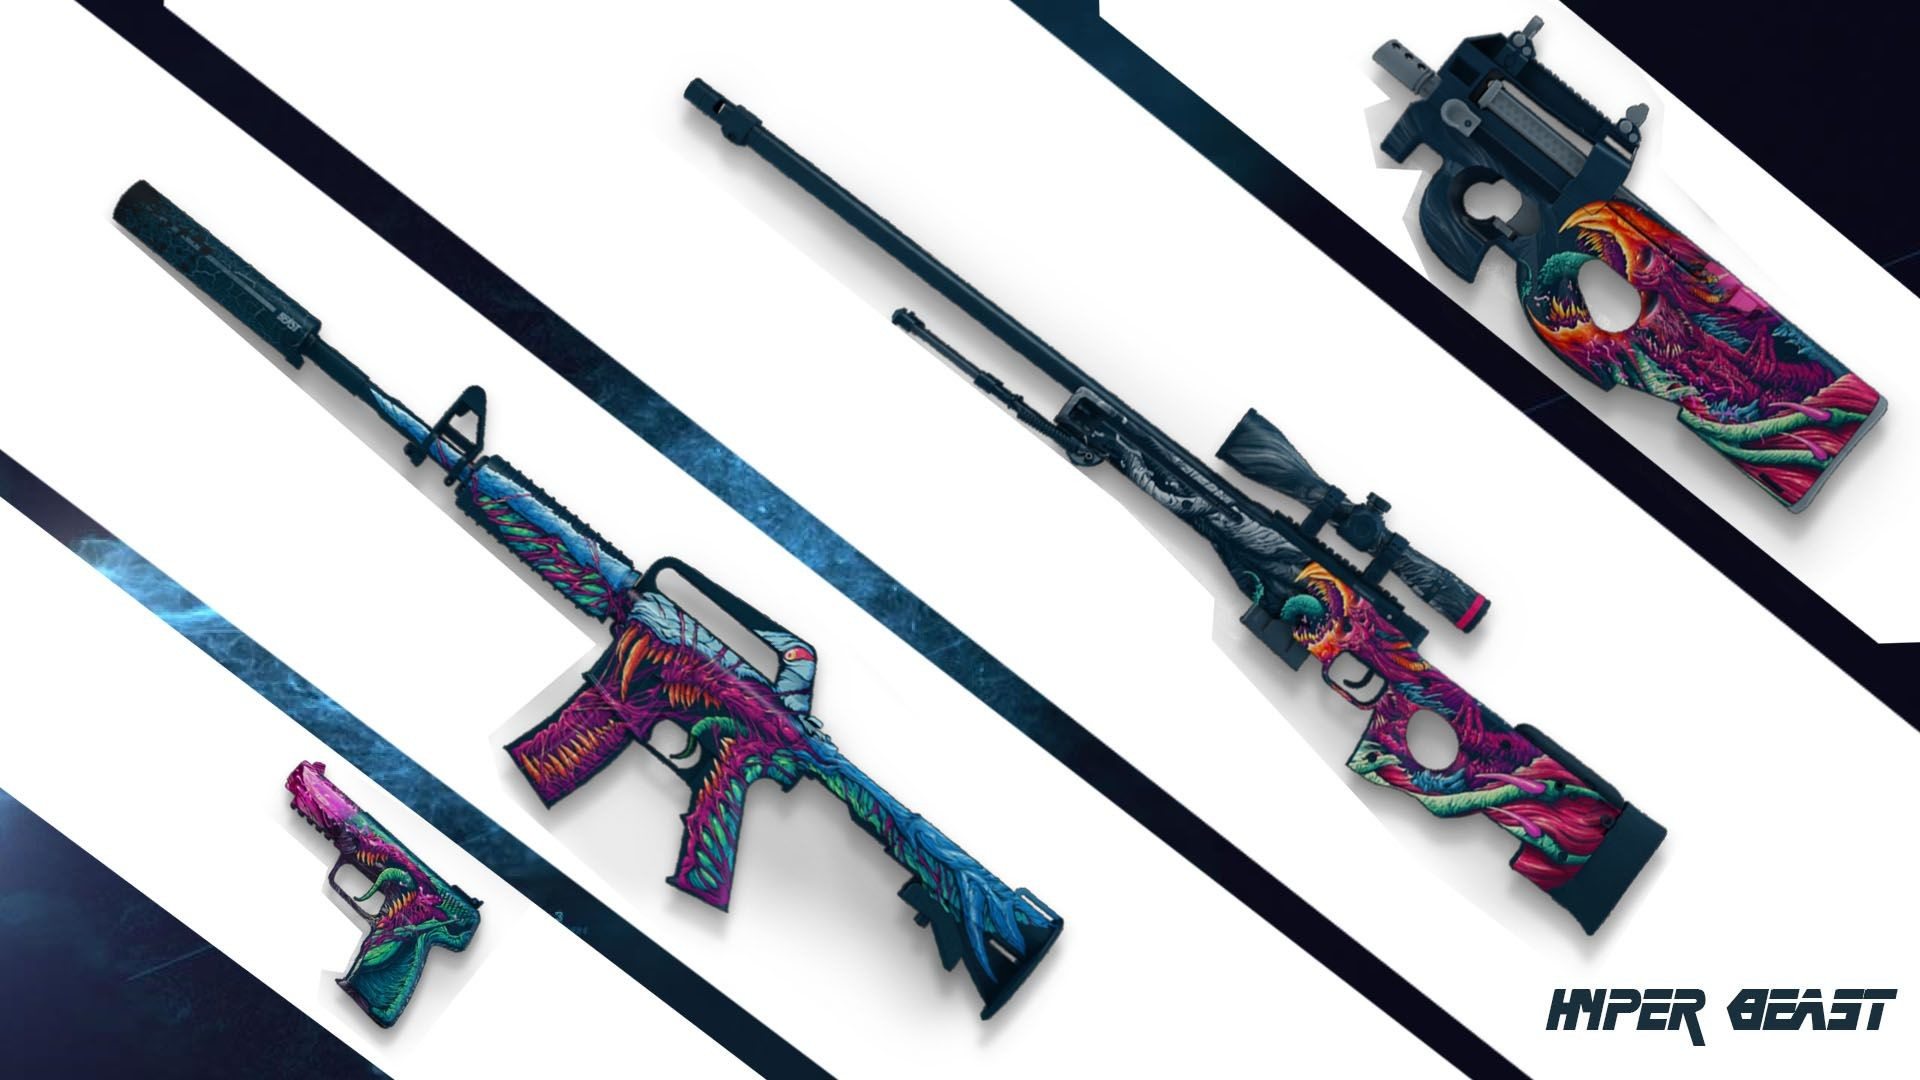 1920x1080 cs go hyper beast | Cs Go Awp Wallpaper I made a hyper beast themed  wallpaper [